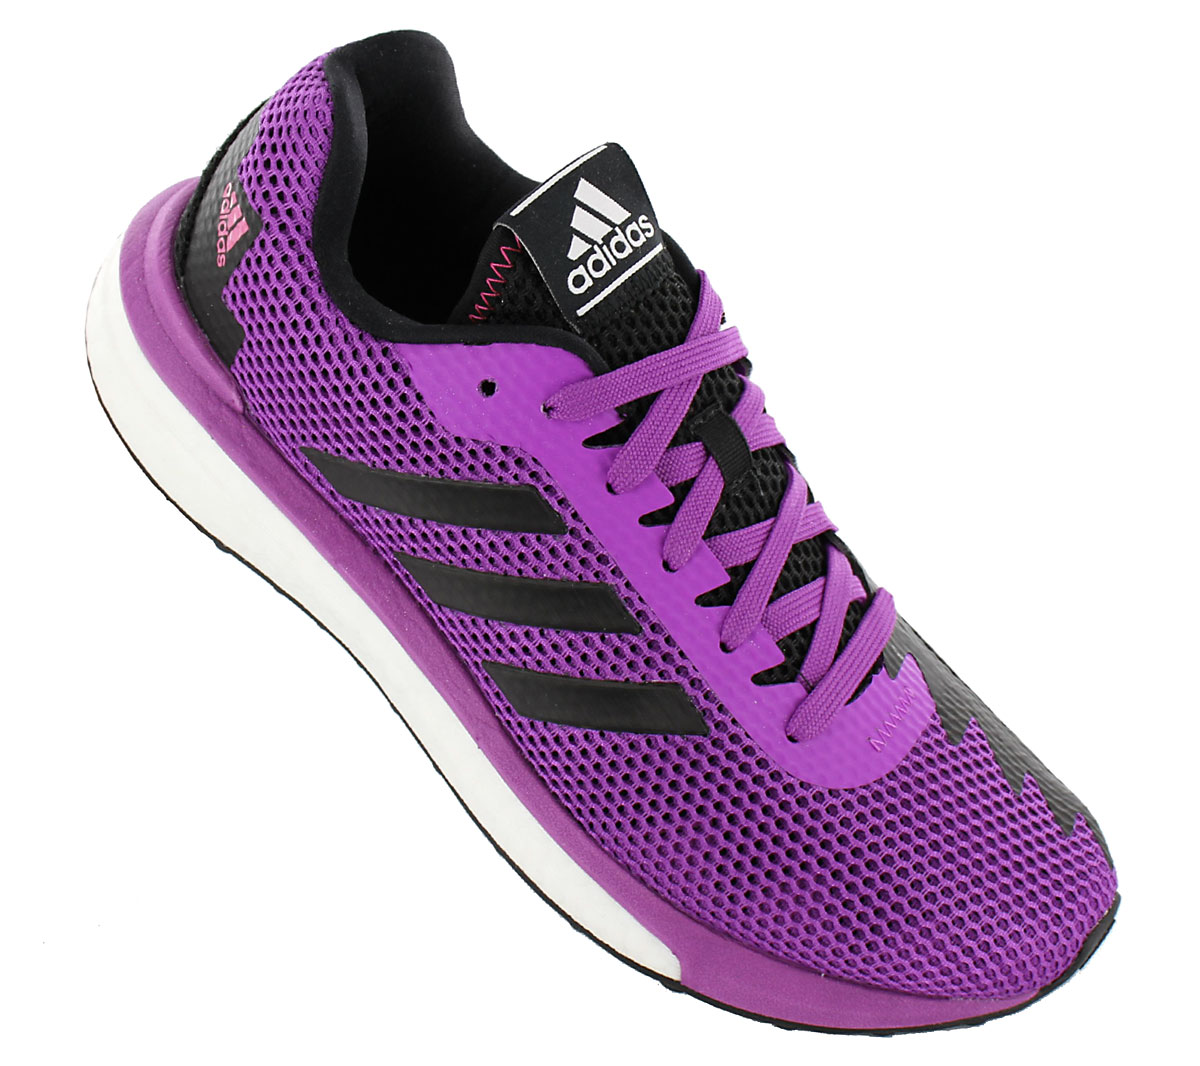 Details about Adidas Vengeful W Boost Women's Running Shoes Jogging Fitness Shoes AQ609